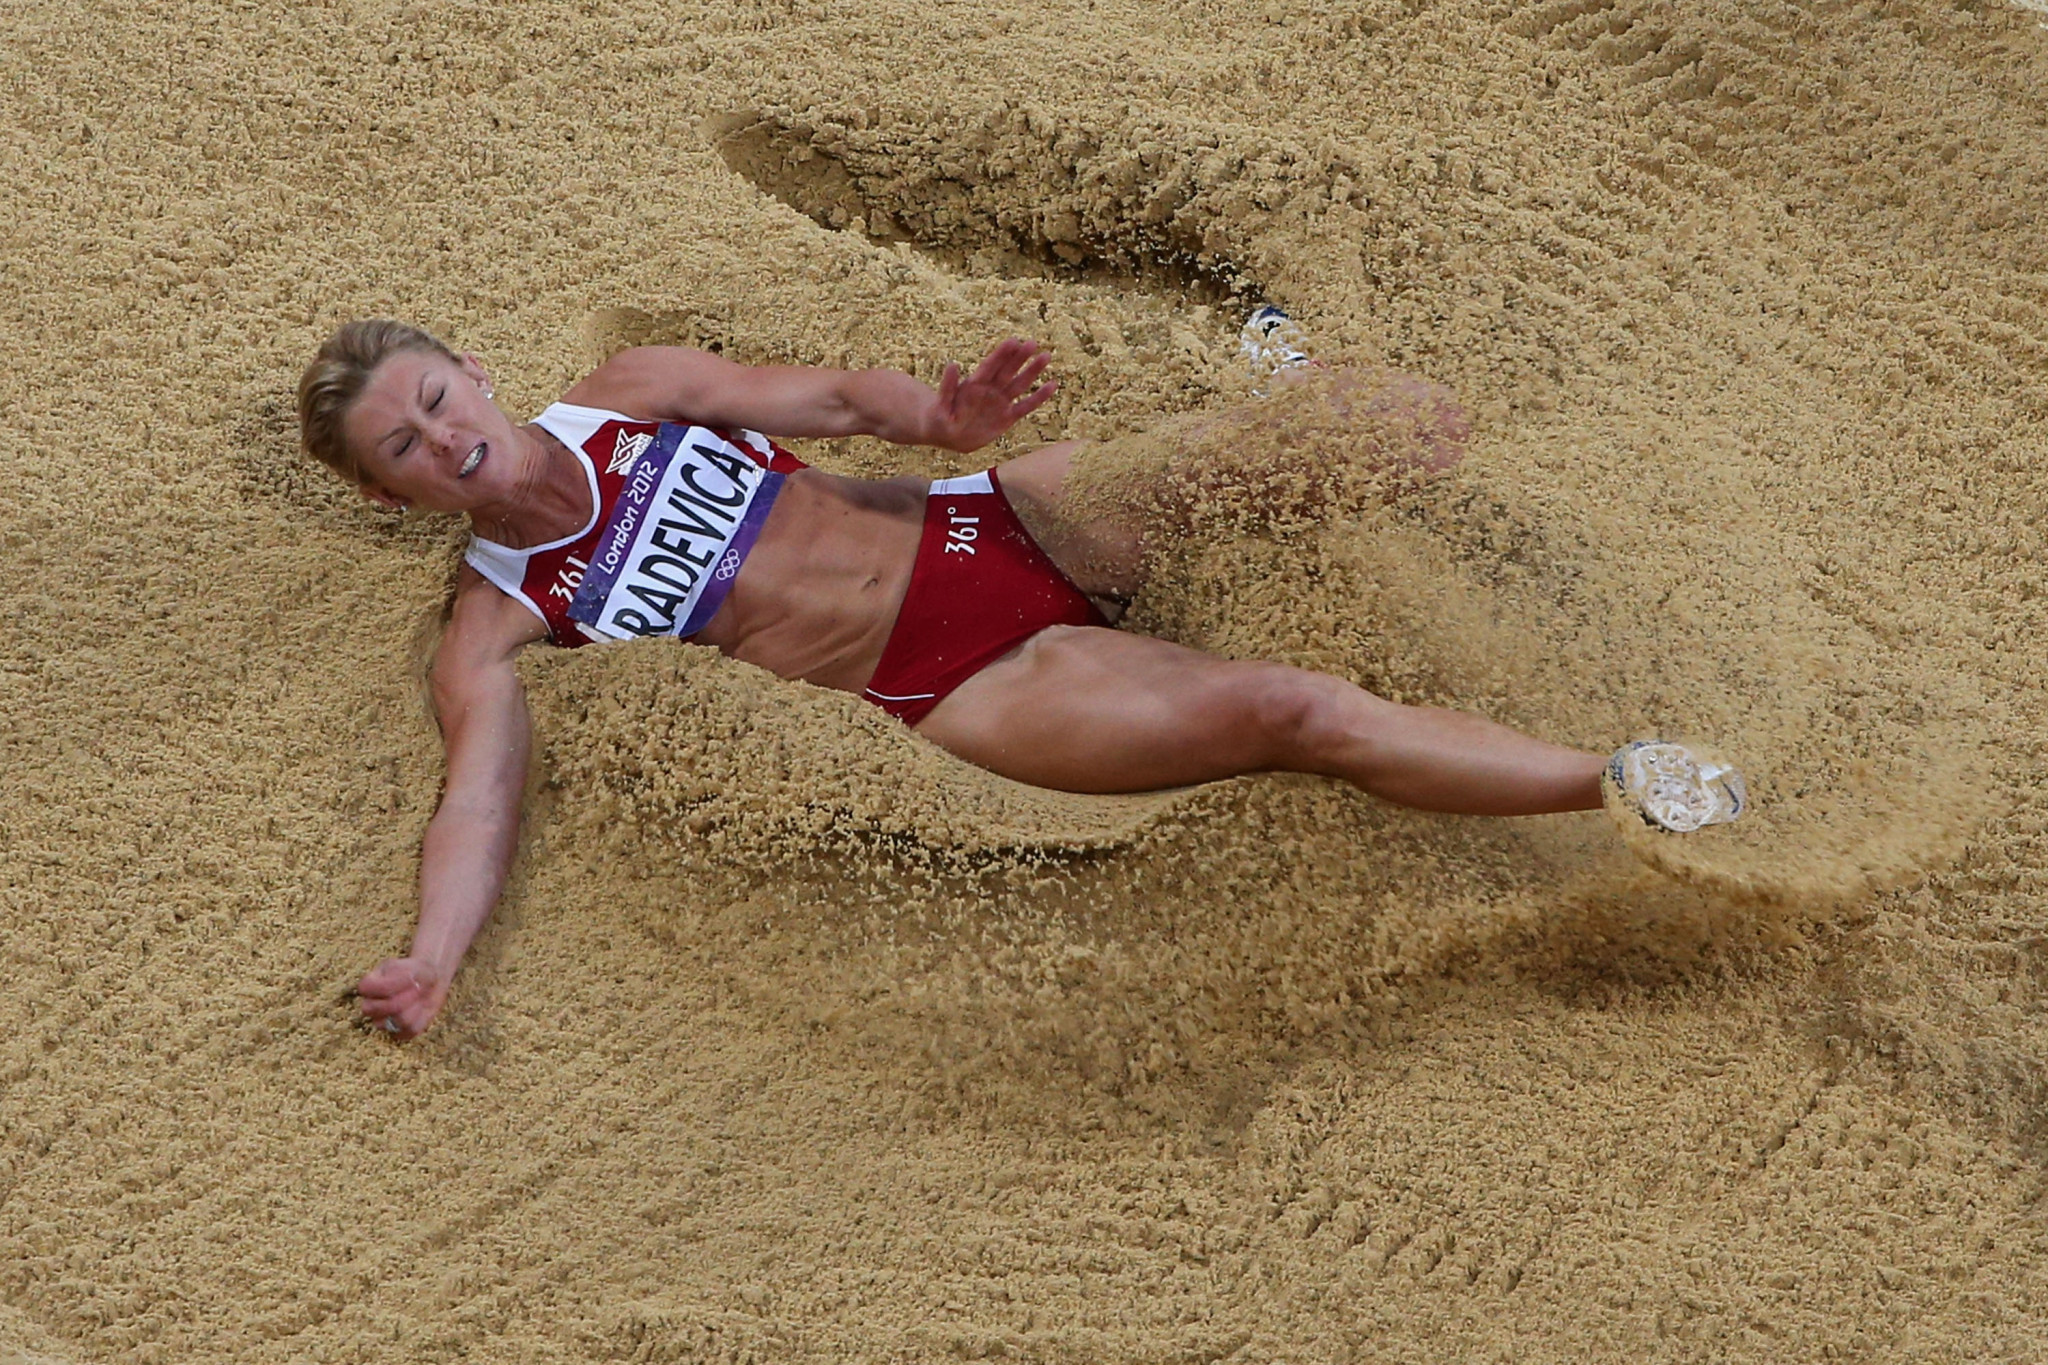 Ineta Radevica finished in fourth place at the London 2012 Olympics ©Getty Images